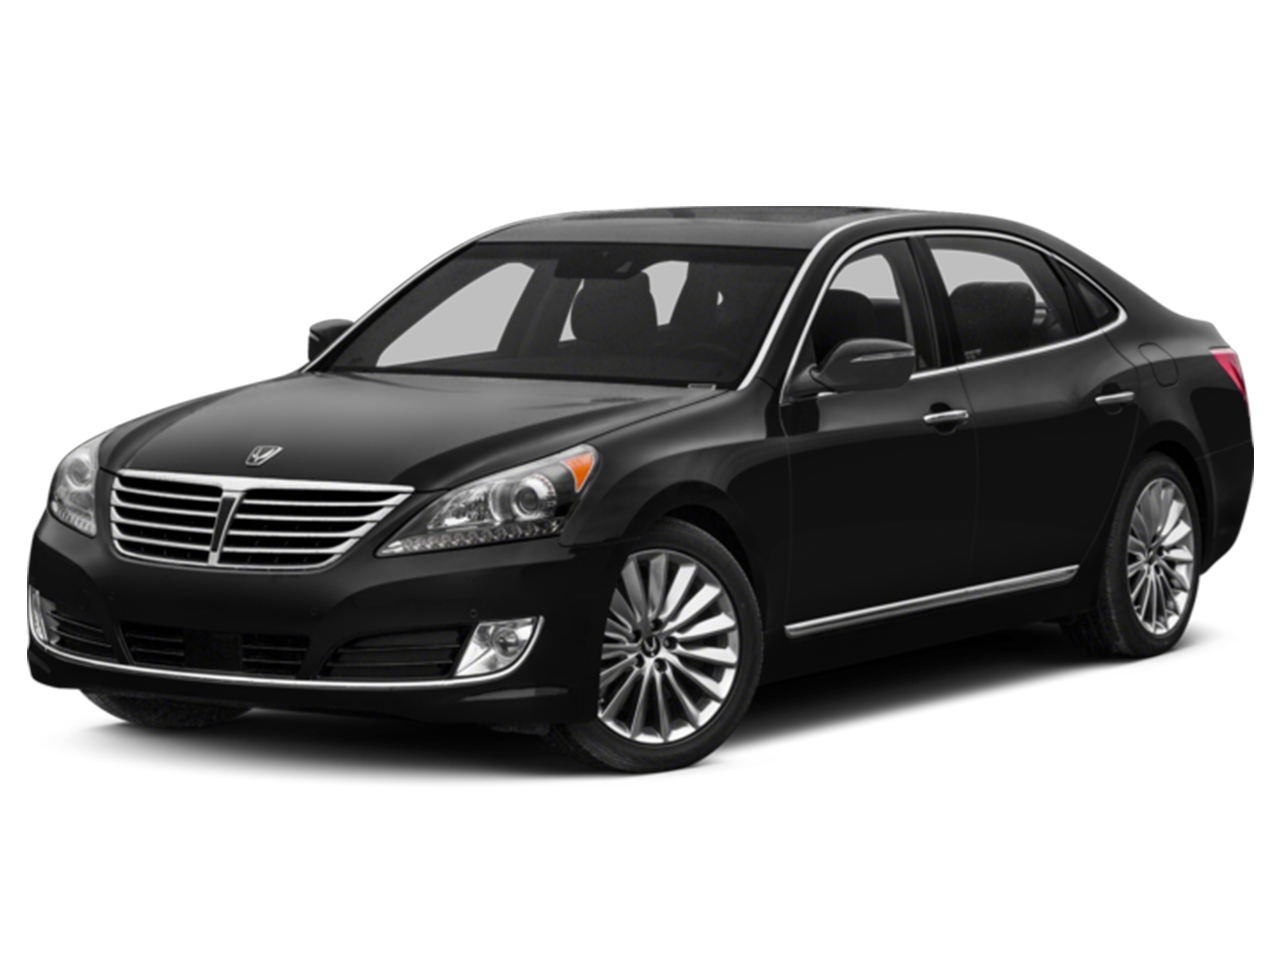 2016 hyundai equus photos informations articles. Black Bedroom Furniture Sets. Home Design Ideas